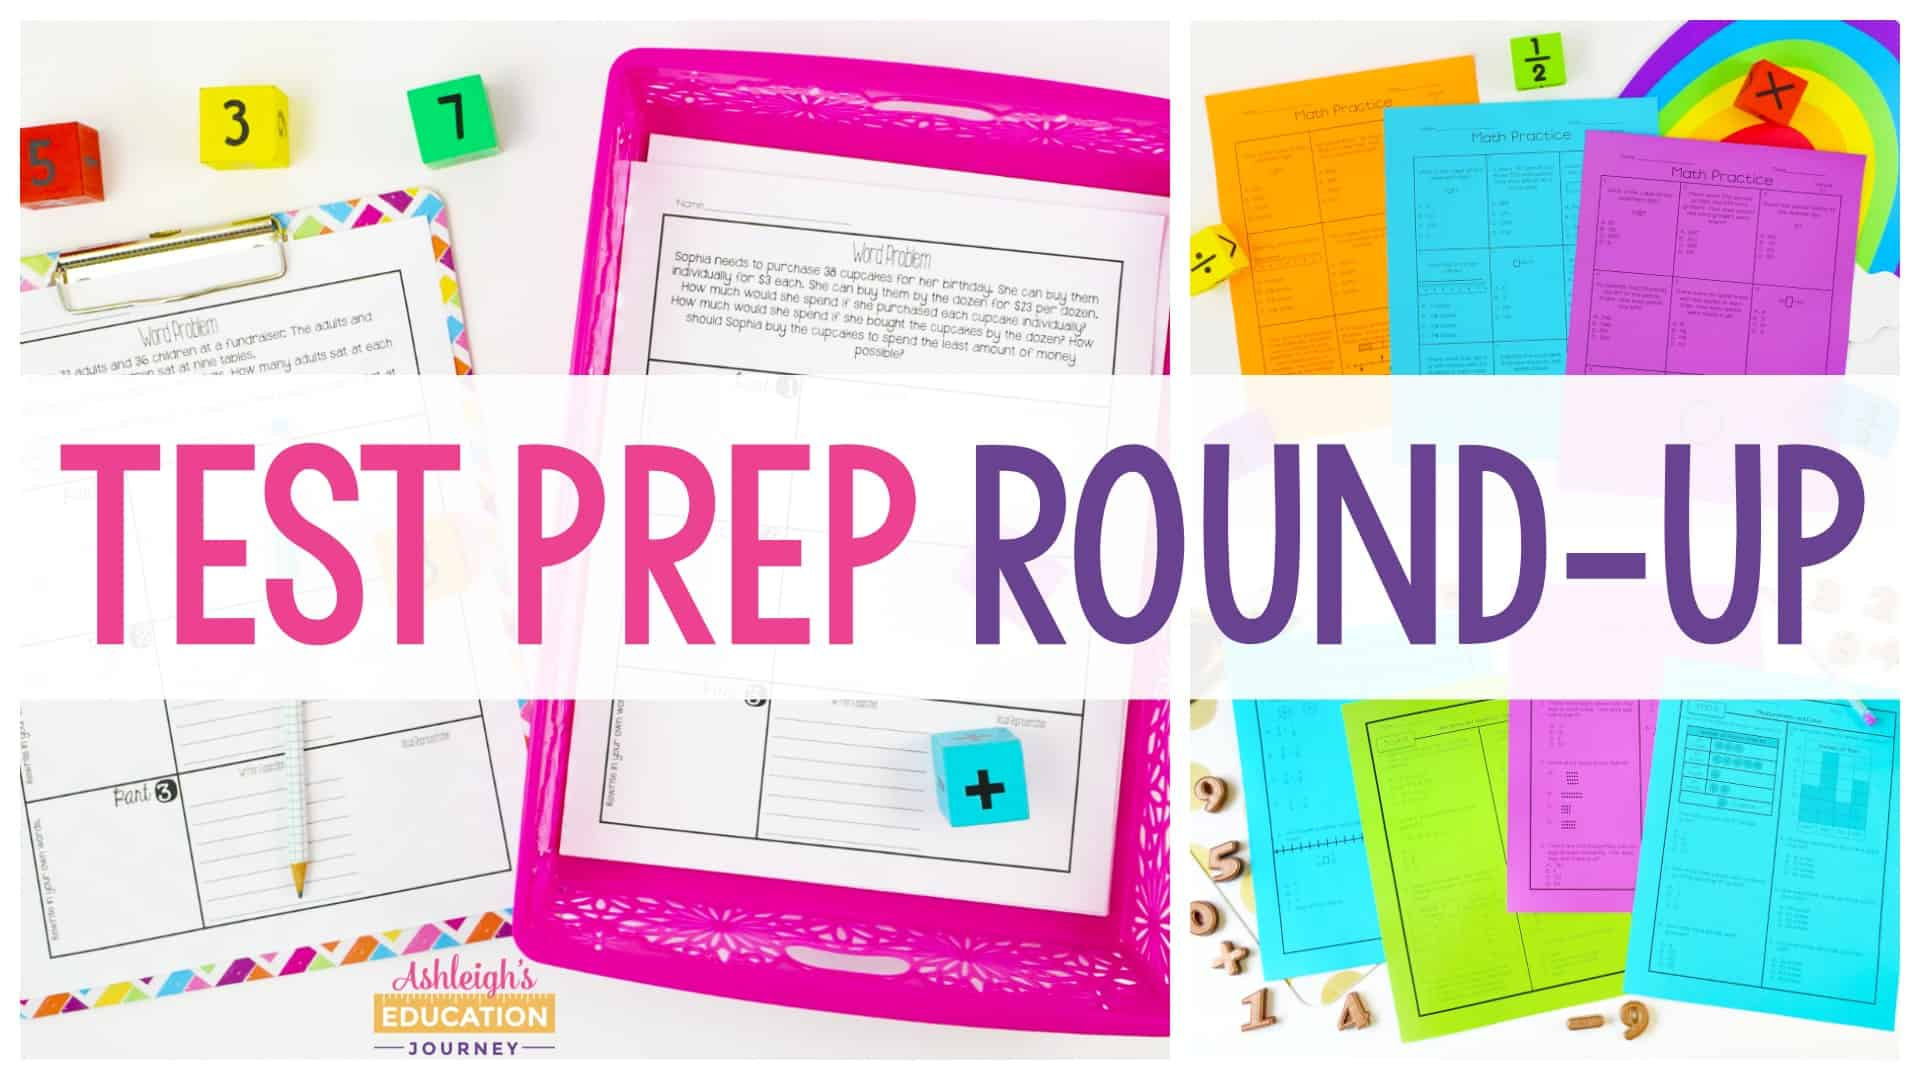 Test Prep Round-Up header with colorful test prep materials in the background